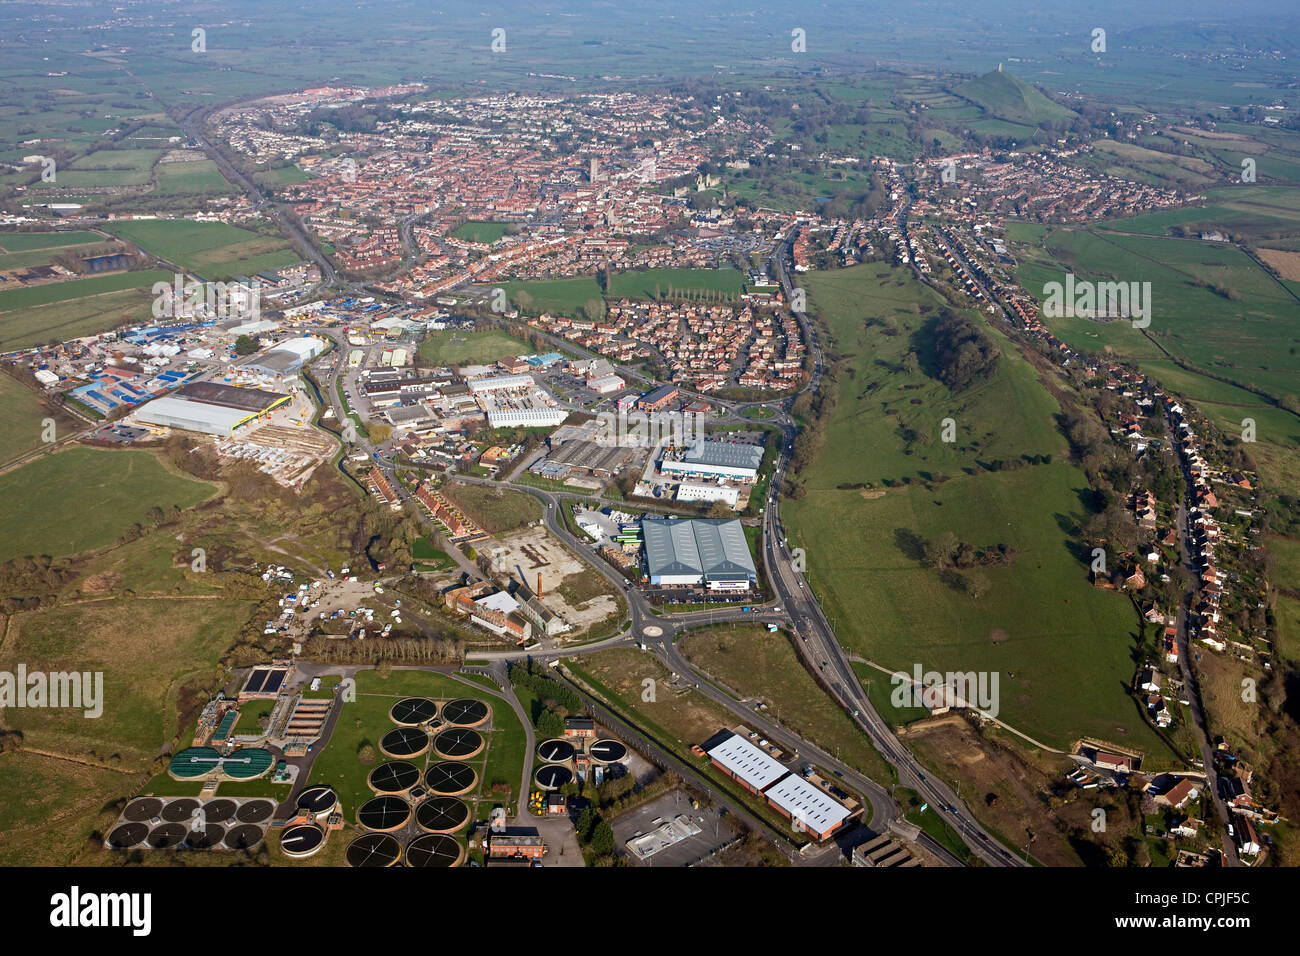 aerial view of industrial area of Glastonbury, Wiltshire - Stock Image